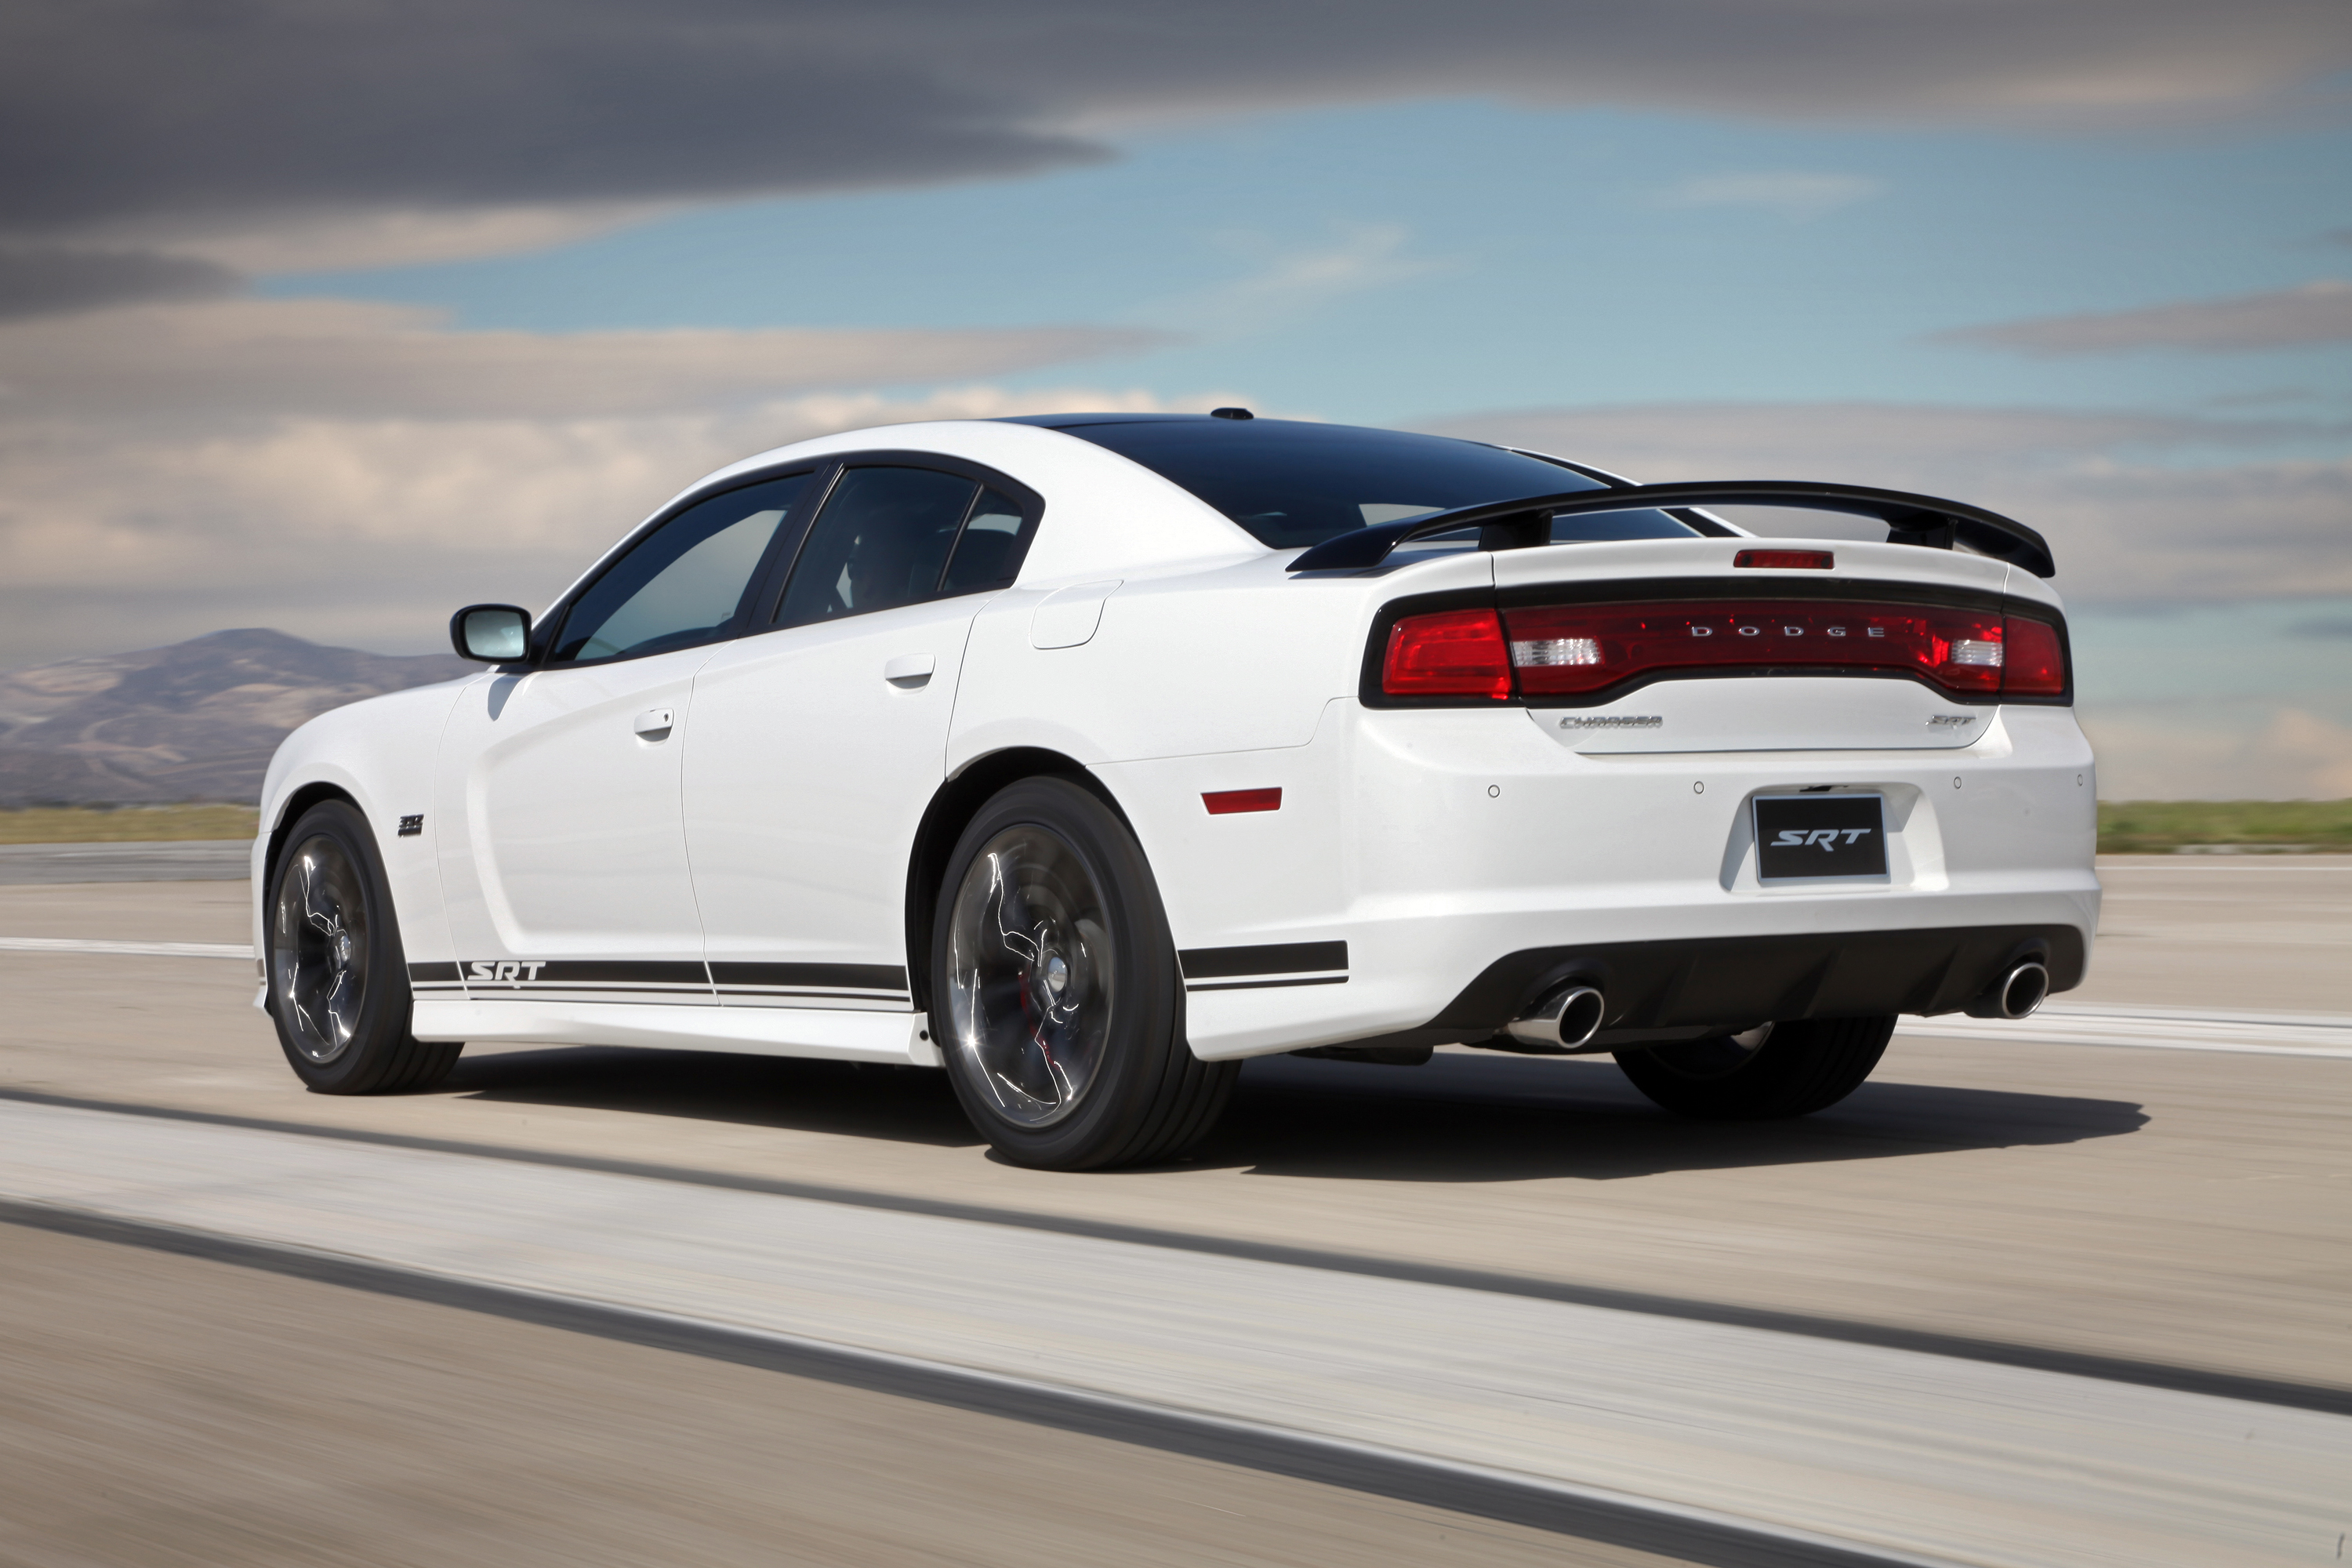 2013 Dodge Charger SRT 392 | Top Speed